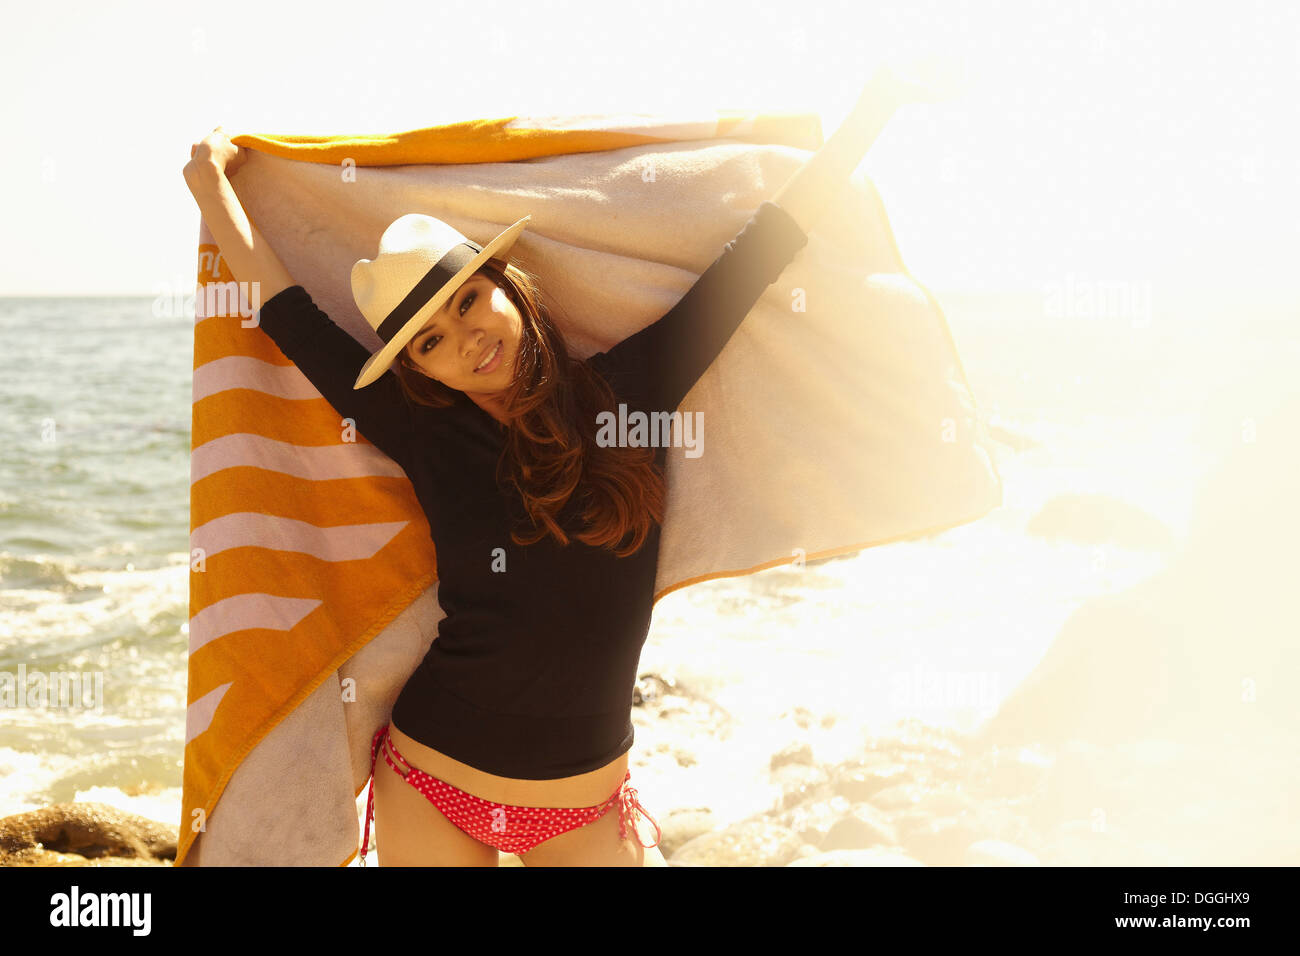 Young woman with beach towel, Palos Verdes, California, USA - Stock Image